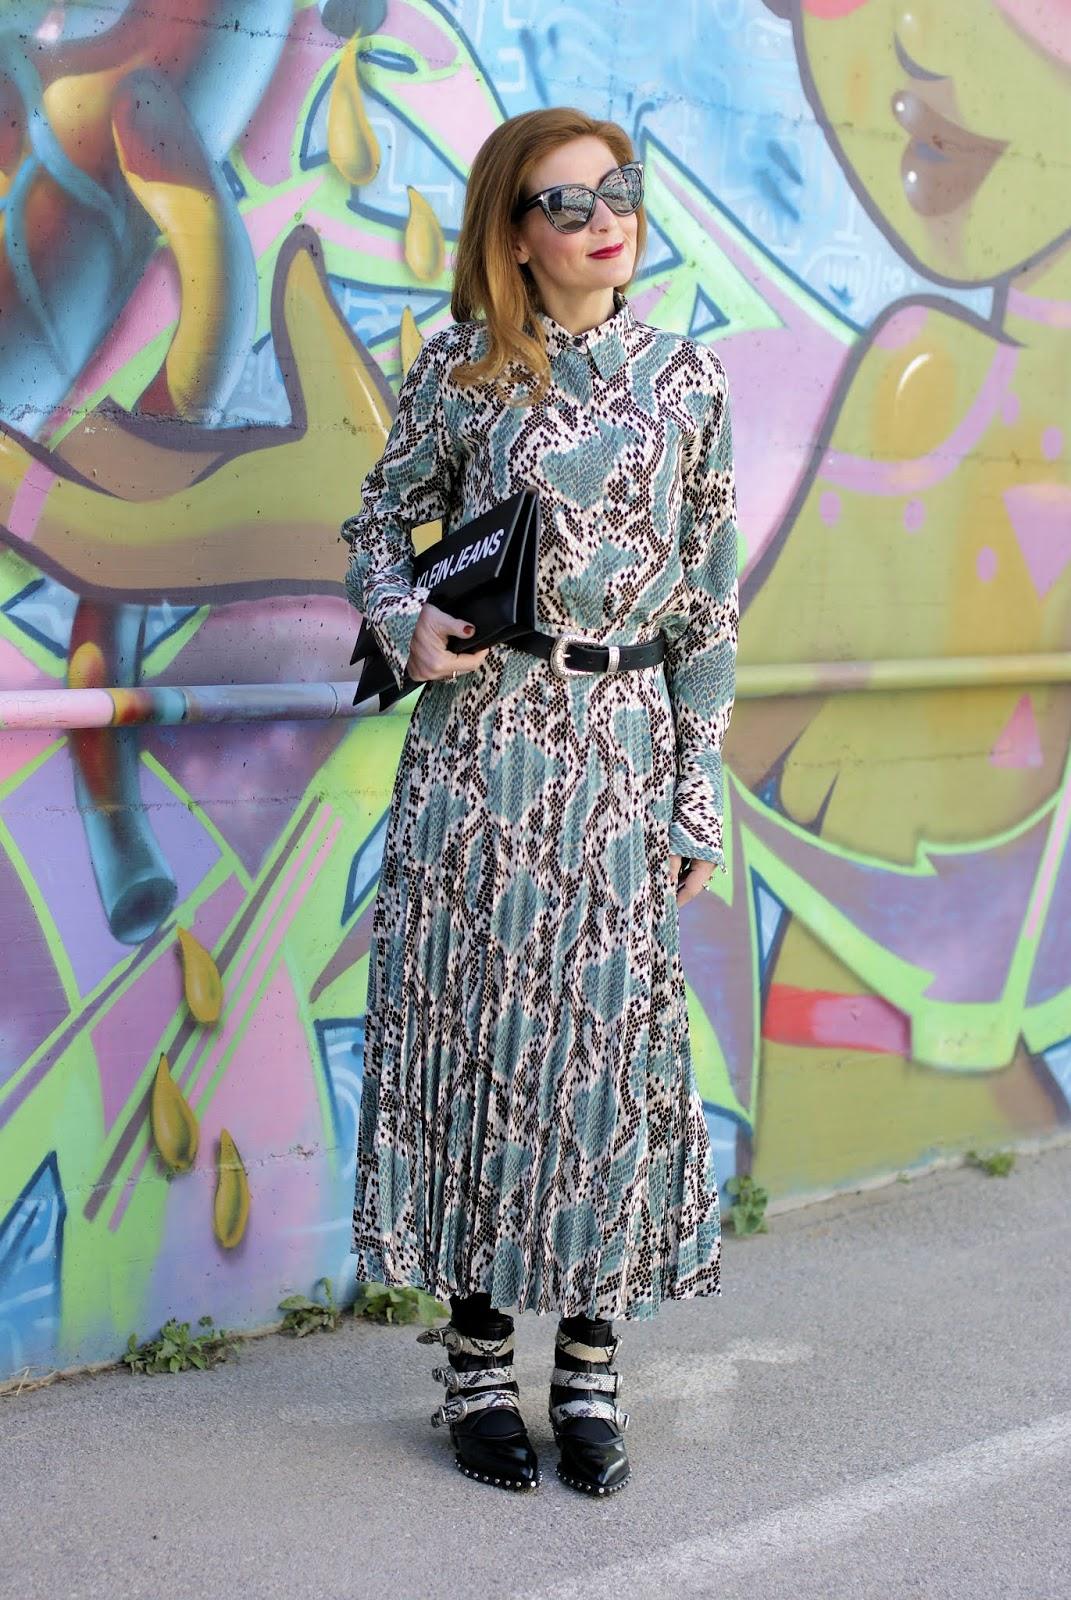 Snakeskin print is a hot trend: my python print outfit on Fashion and Cookies fashion blog, fashion blogger style